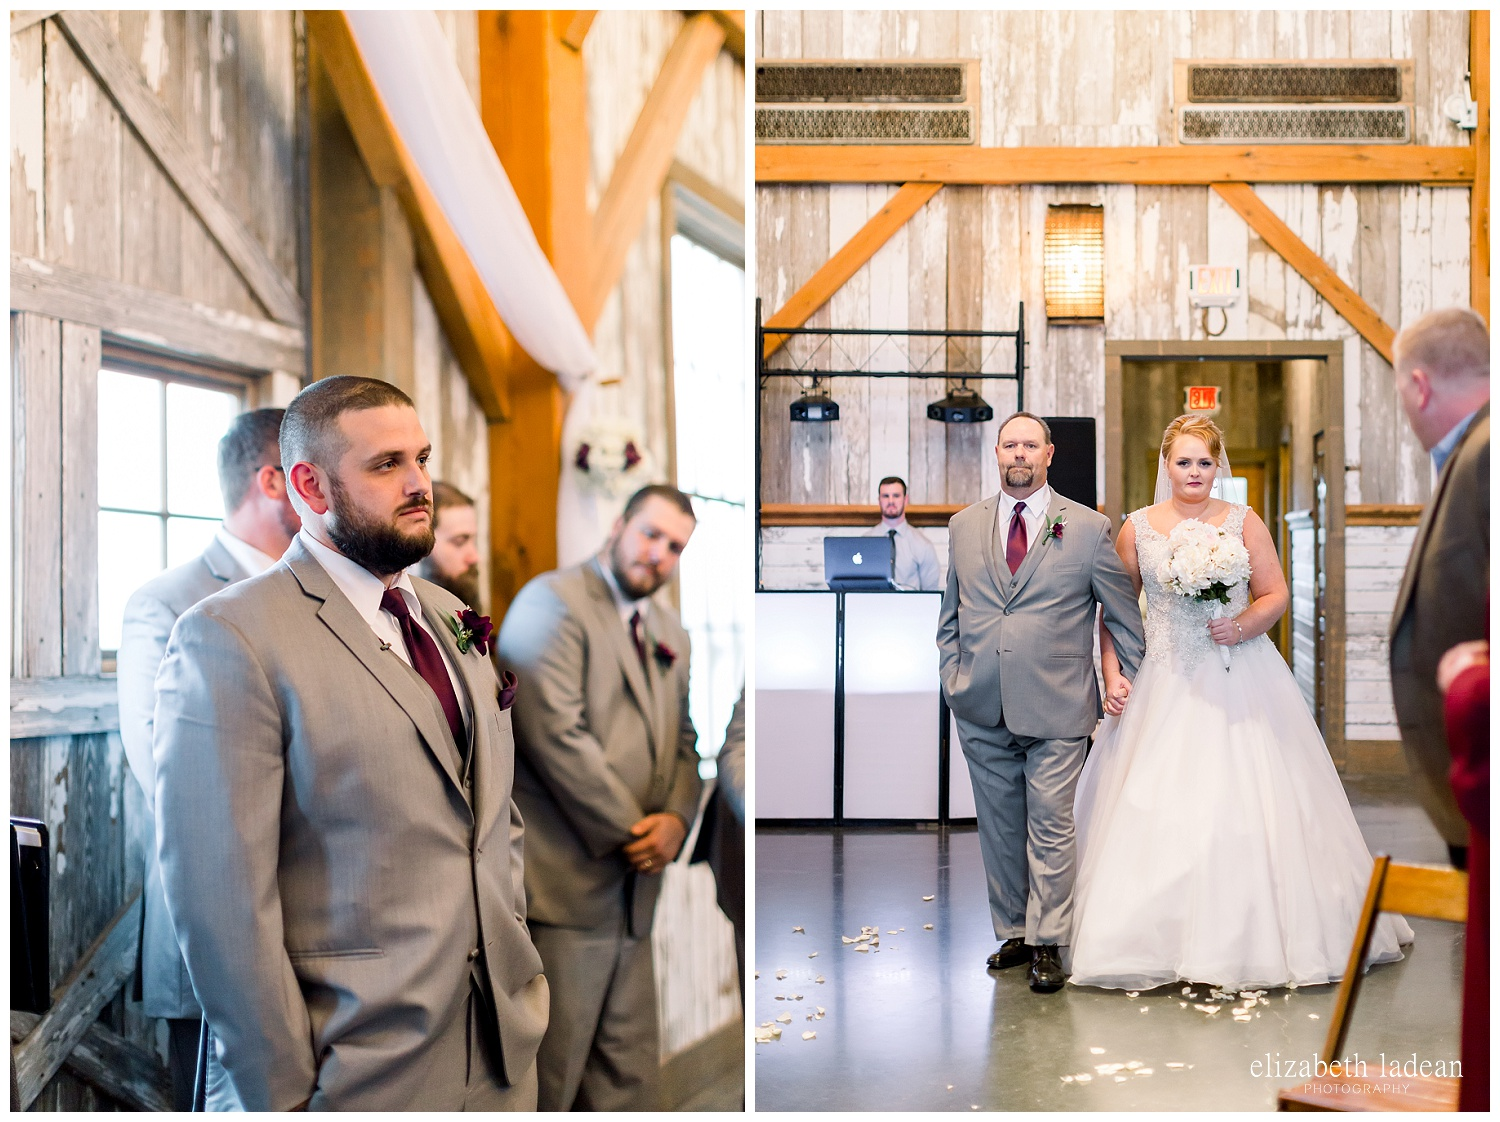 Weston-Timber-Barn-Wedding-Photography-L+A-elizabeth-ladean0photo_1885.jpg